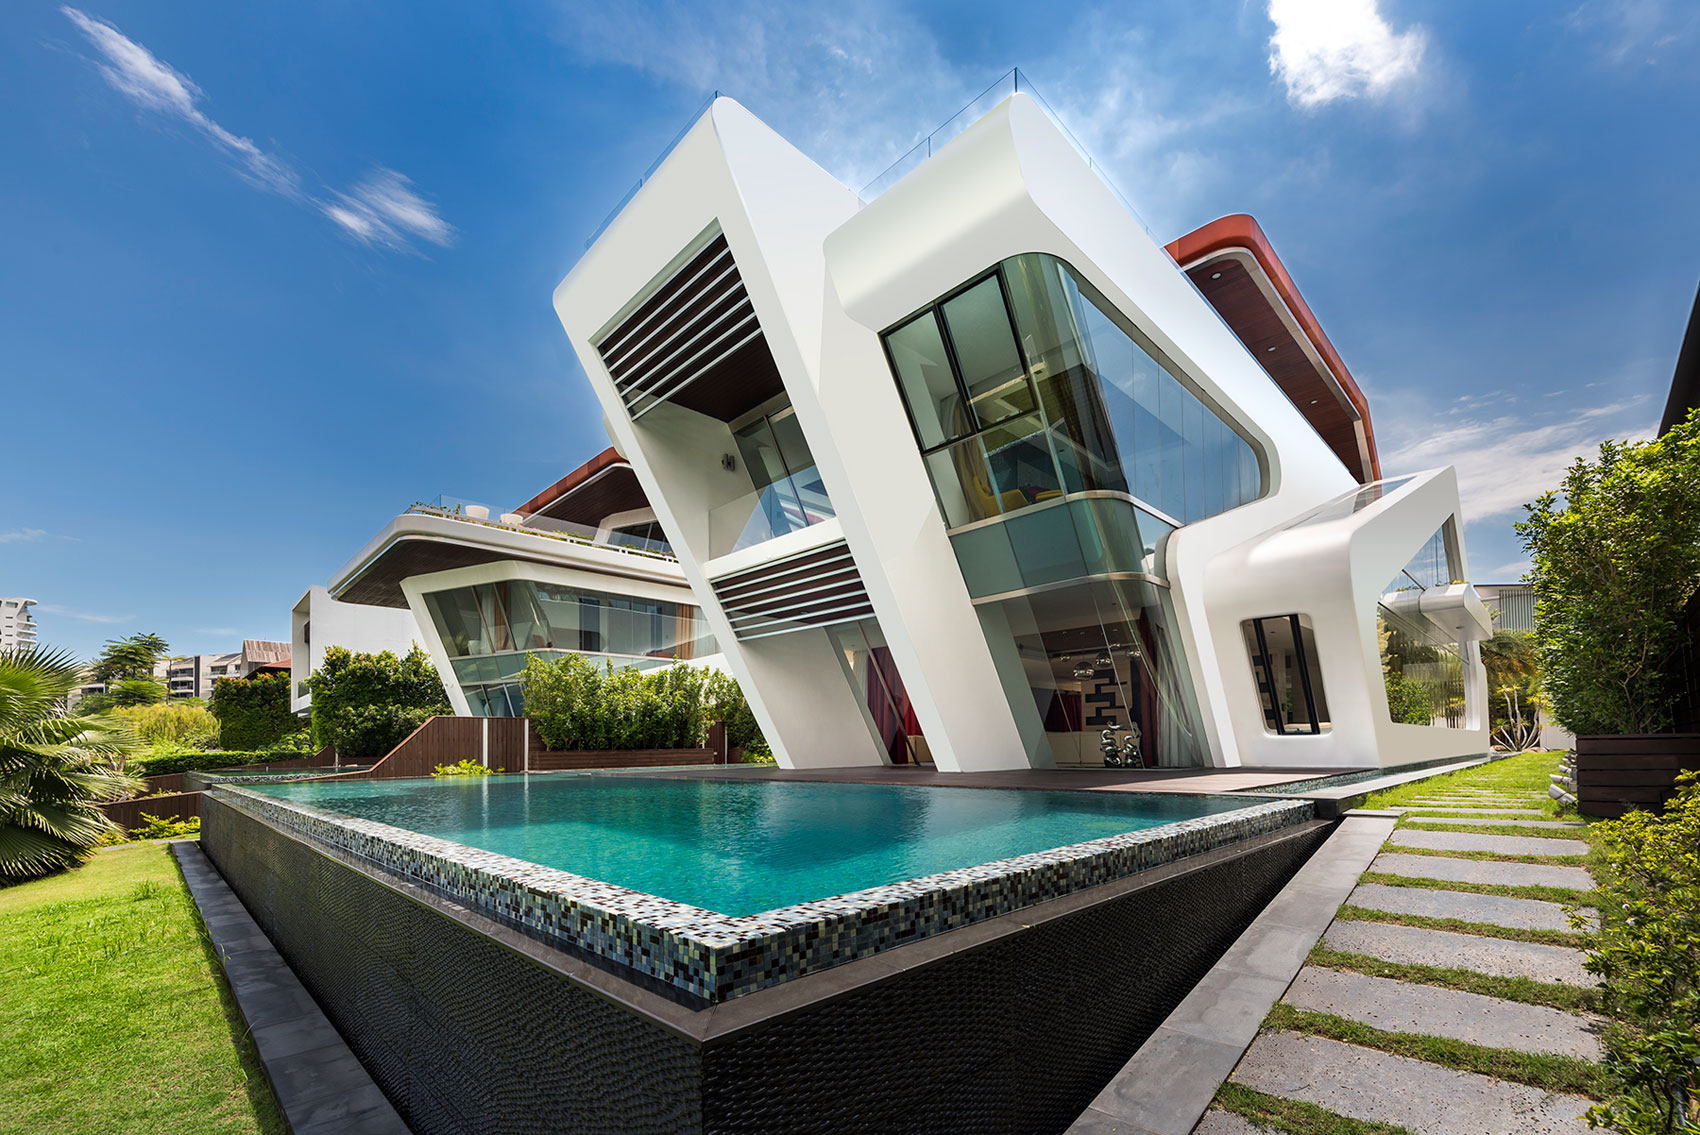 Mercurio design lab create a modern villa in singapore for Modern style mansions